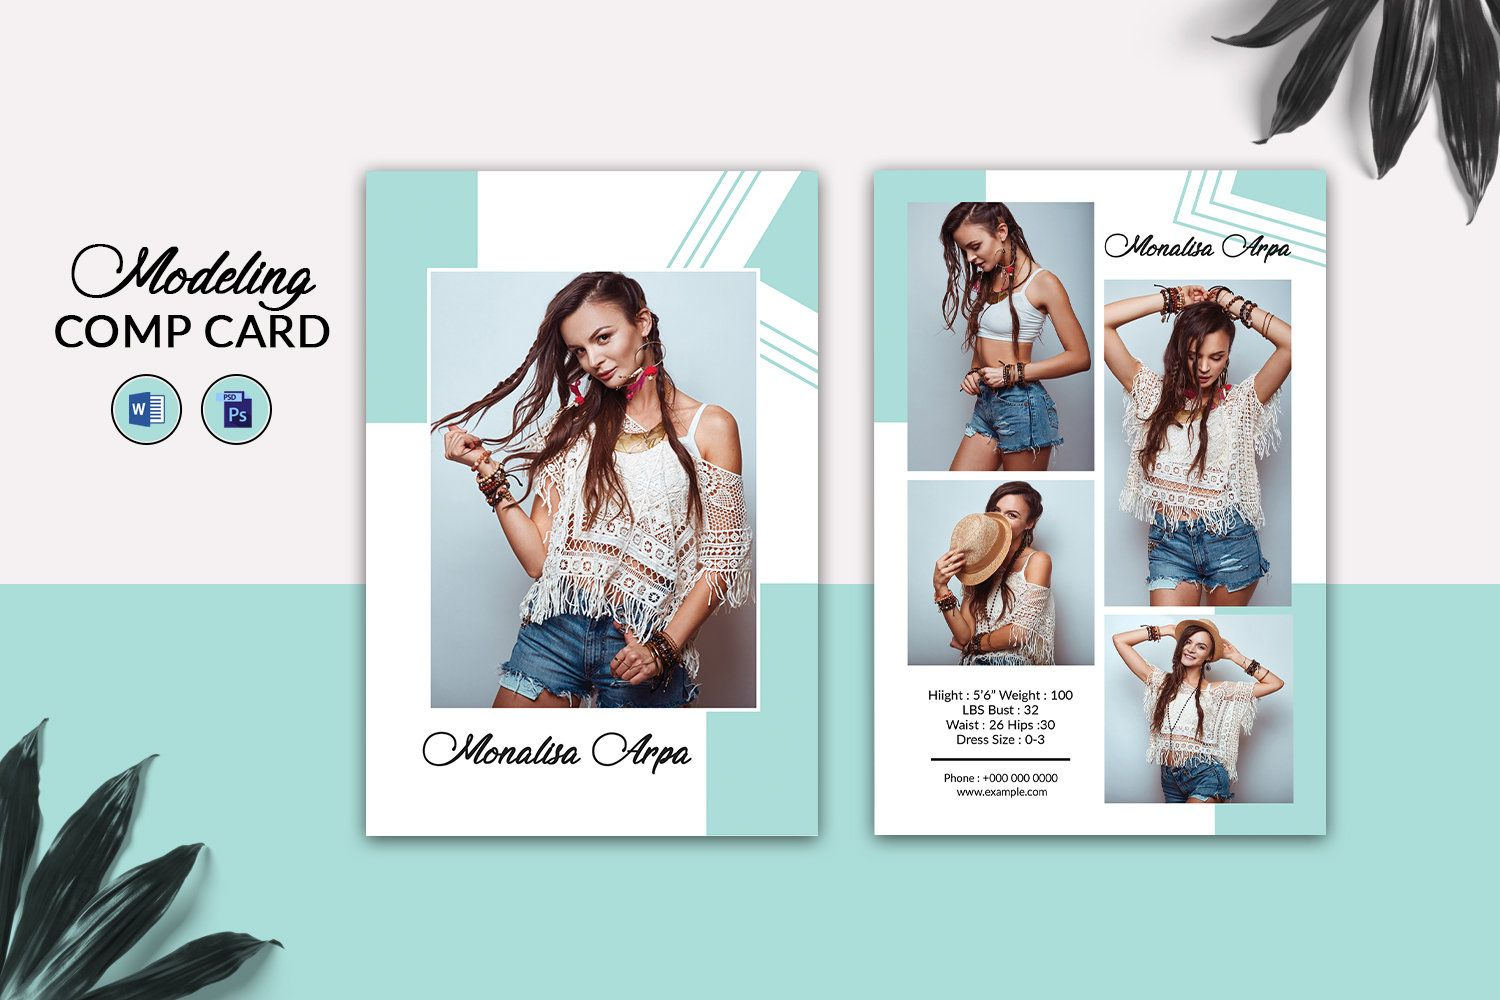 Modeling Comp Card Template Fashion Model Comp Card Modeling Composite Card Photoshop And Ms Word Template Instant Downloa Model Comp Card Model Fashion